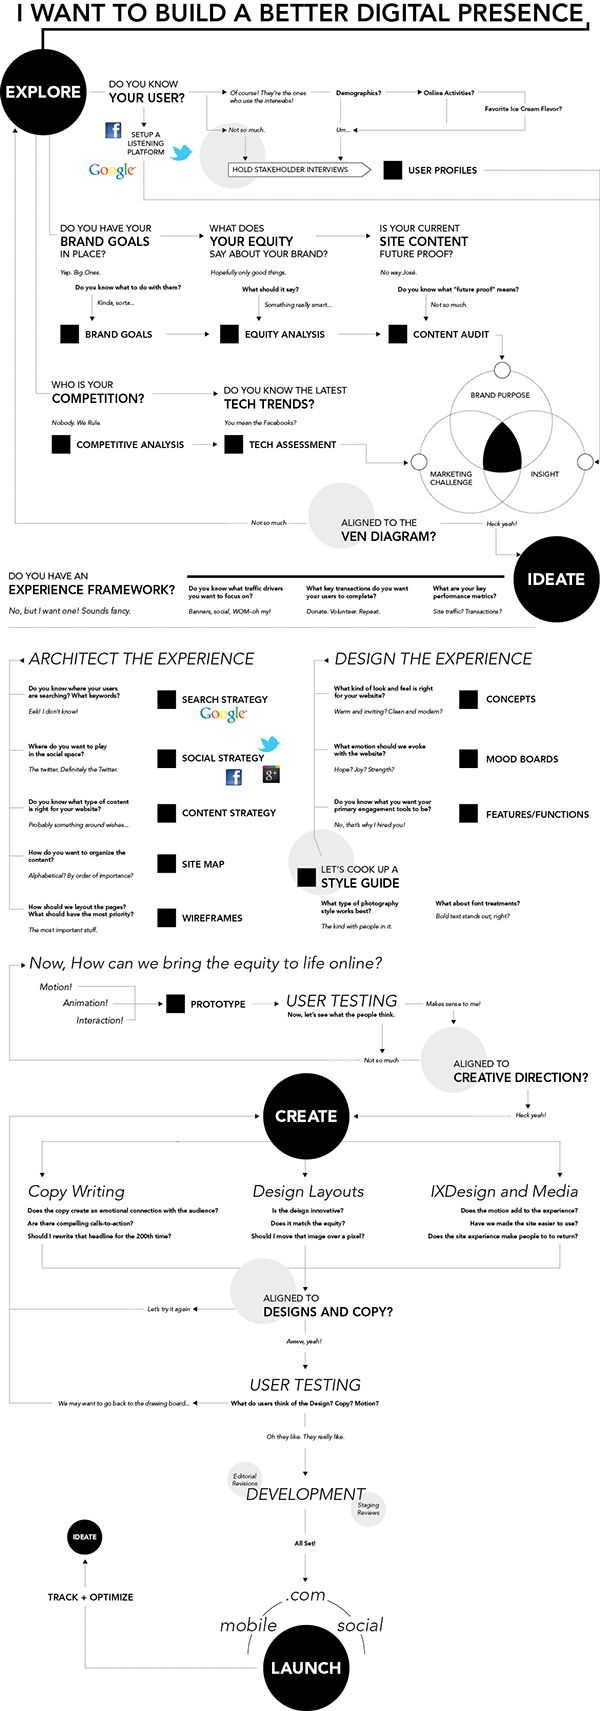 A process flow diagram that communicates elaborate steps of designing for a web presence.